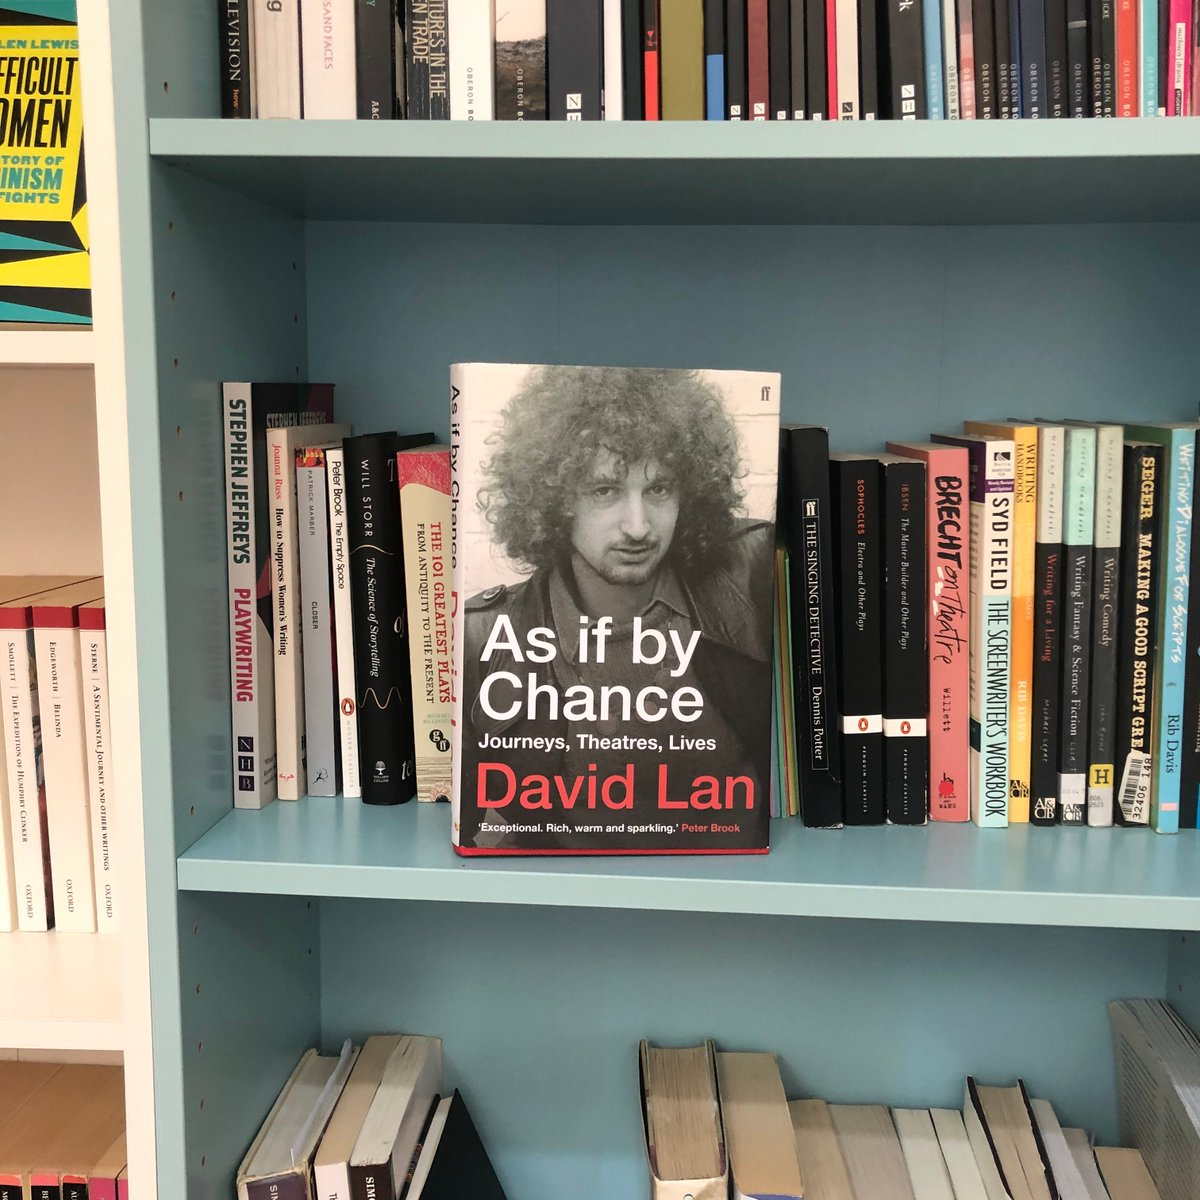 """Enjoyed this memoir by David Lan, artistic director of the Young Vic 2000-18. Its insightful on difficult directors & theatre being open to the world. He quotes his friend Amir Nizar: """"It's paying endless, very close attention. That's what love is."""" Good motto for life and art."""